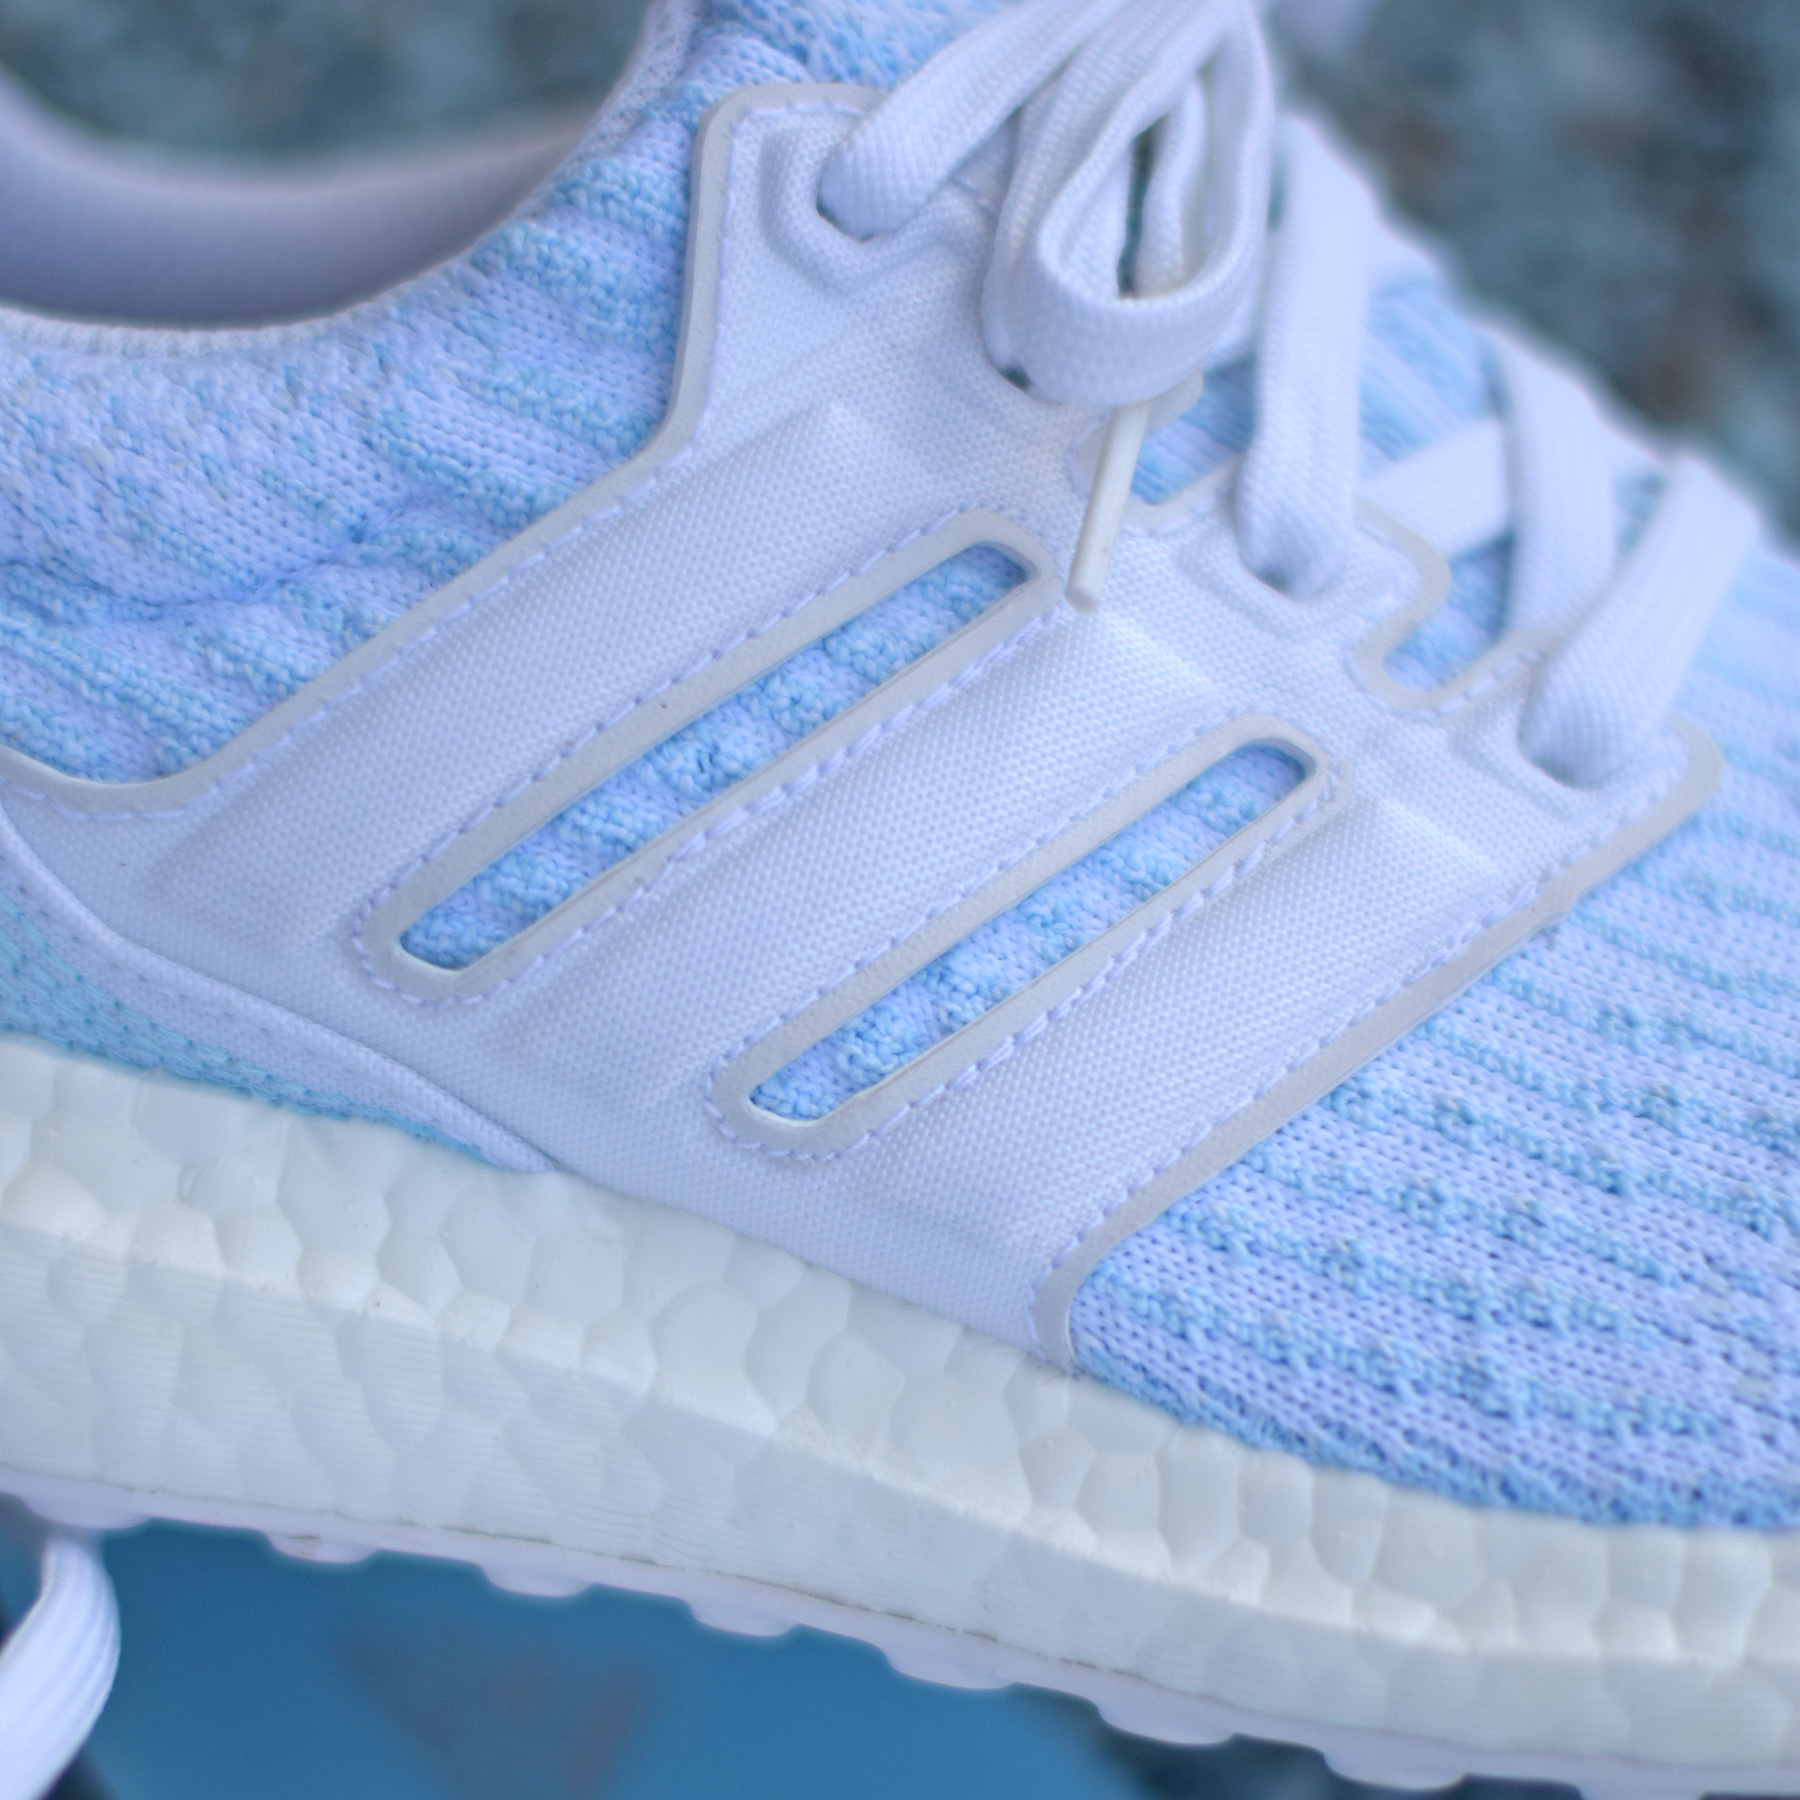 A New Parley x adidas UltraBoost 3.0 'Ice Blue' is Coming